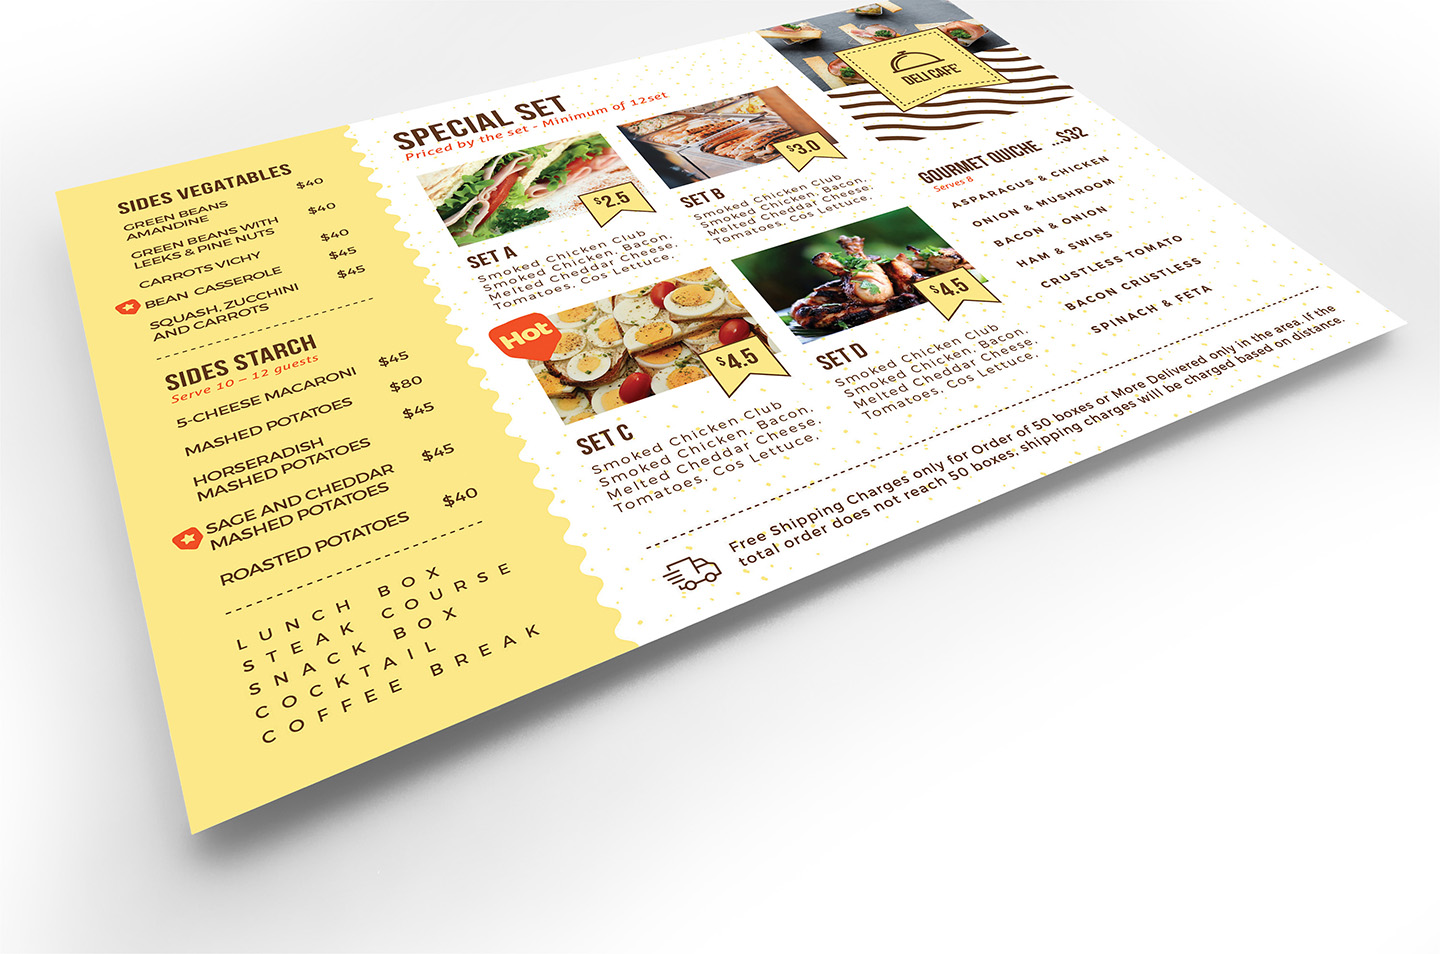 Catering Service Flyer Template v2 example image 4